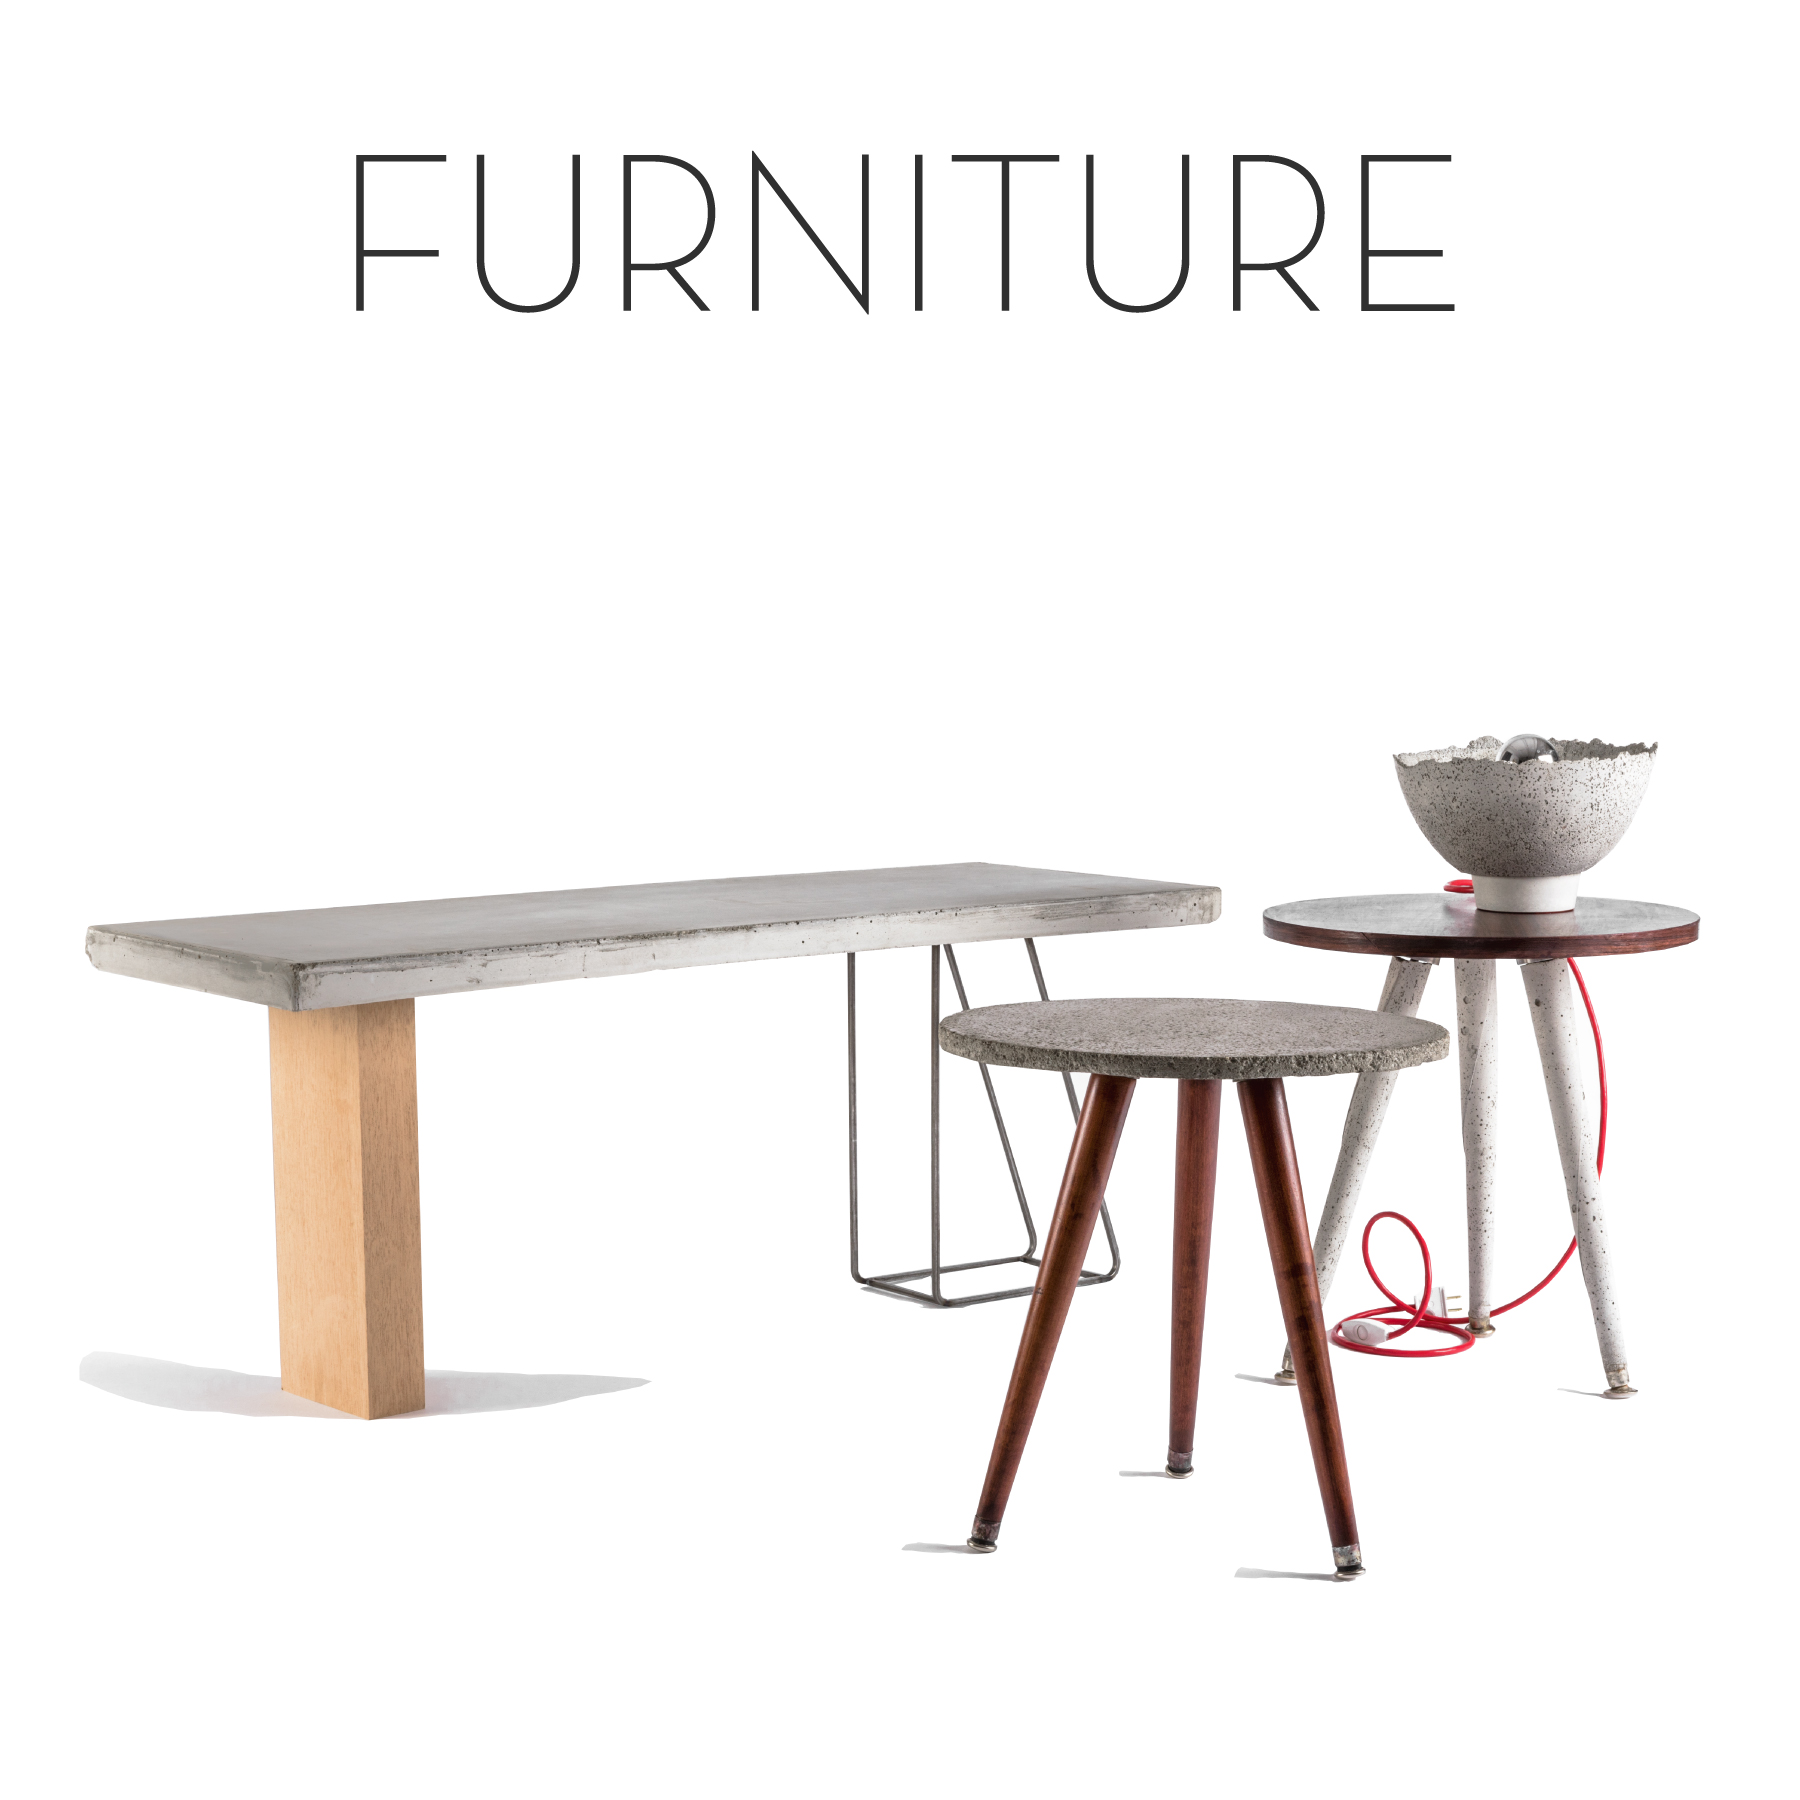 Fine furniture collection, collectible design, bespoke tables, benches, bookcases and more